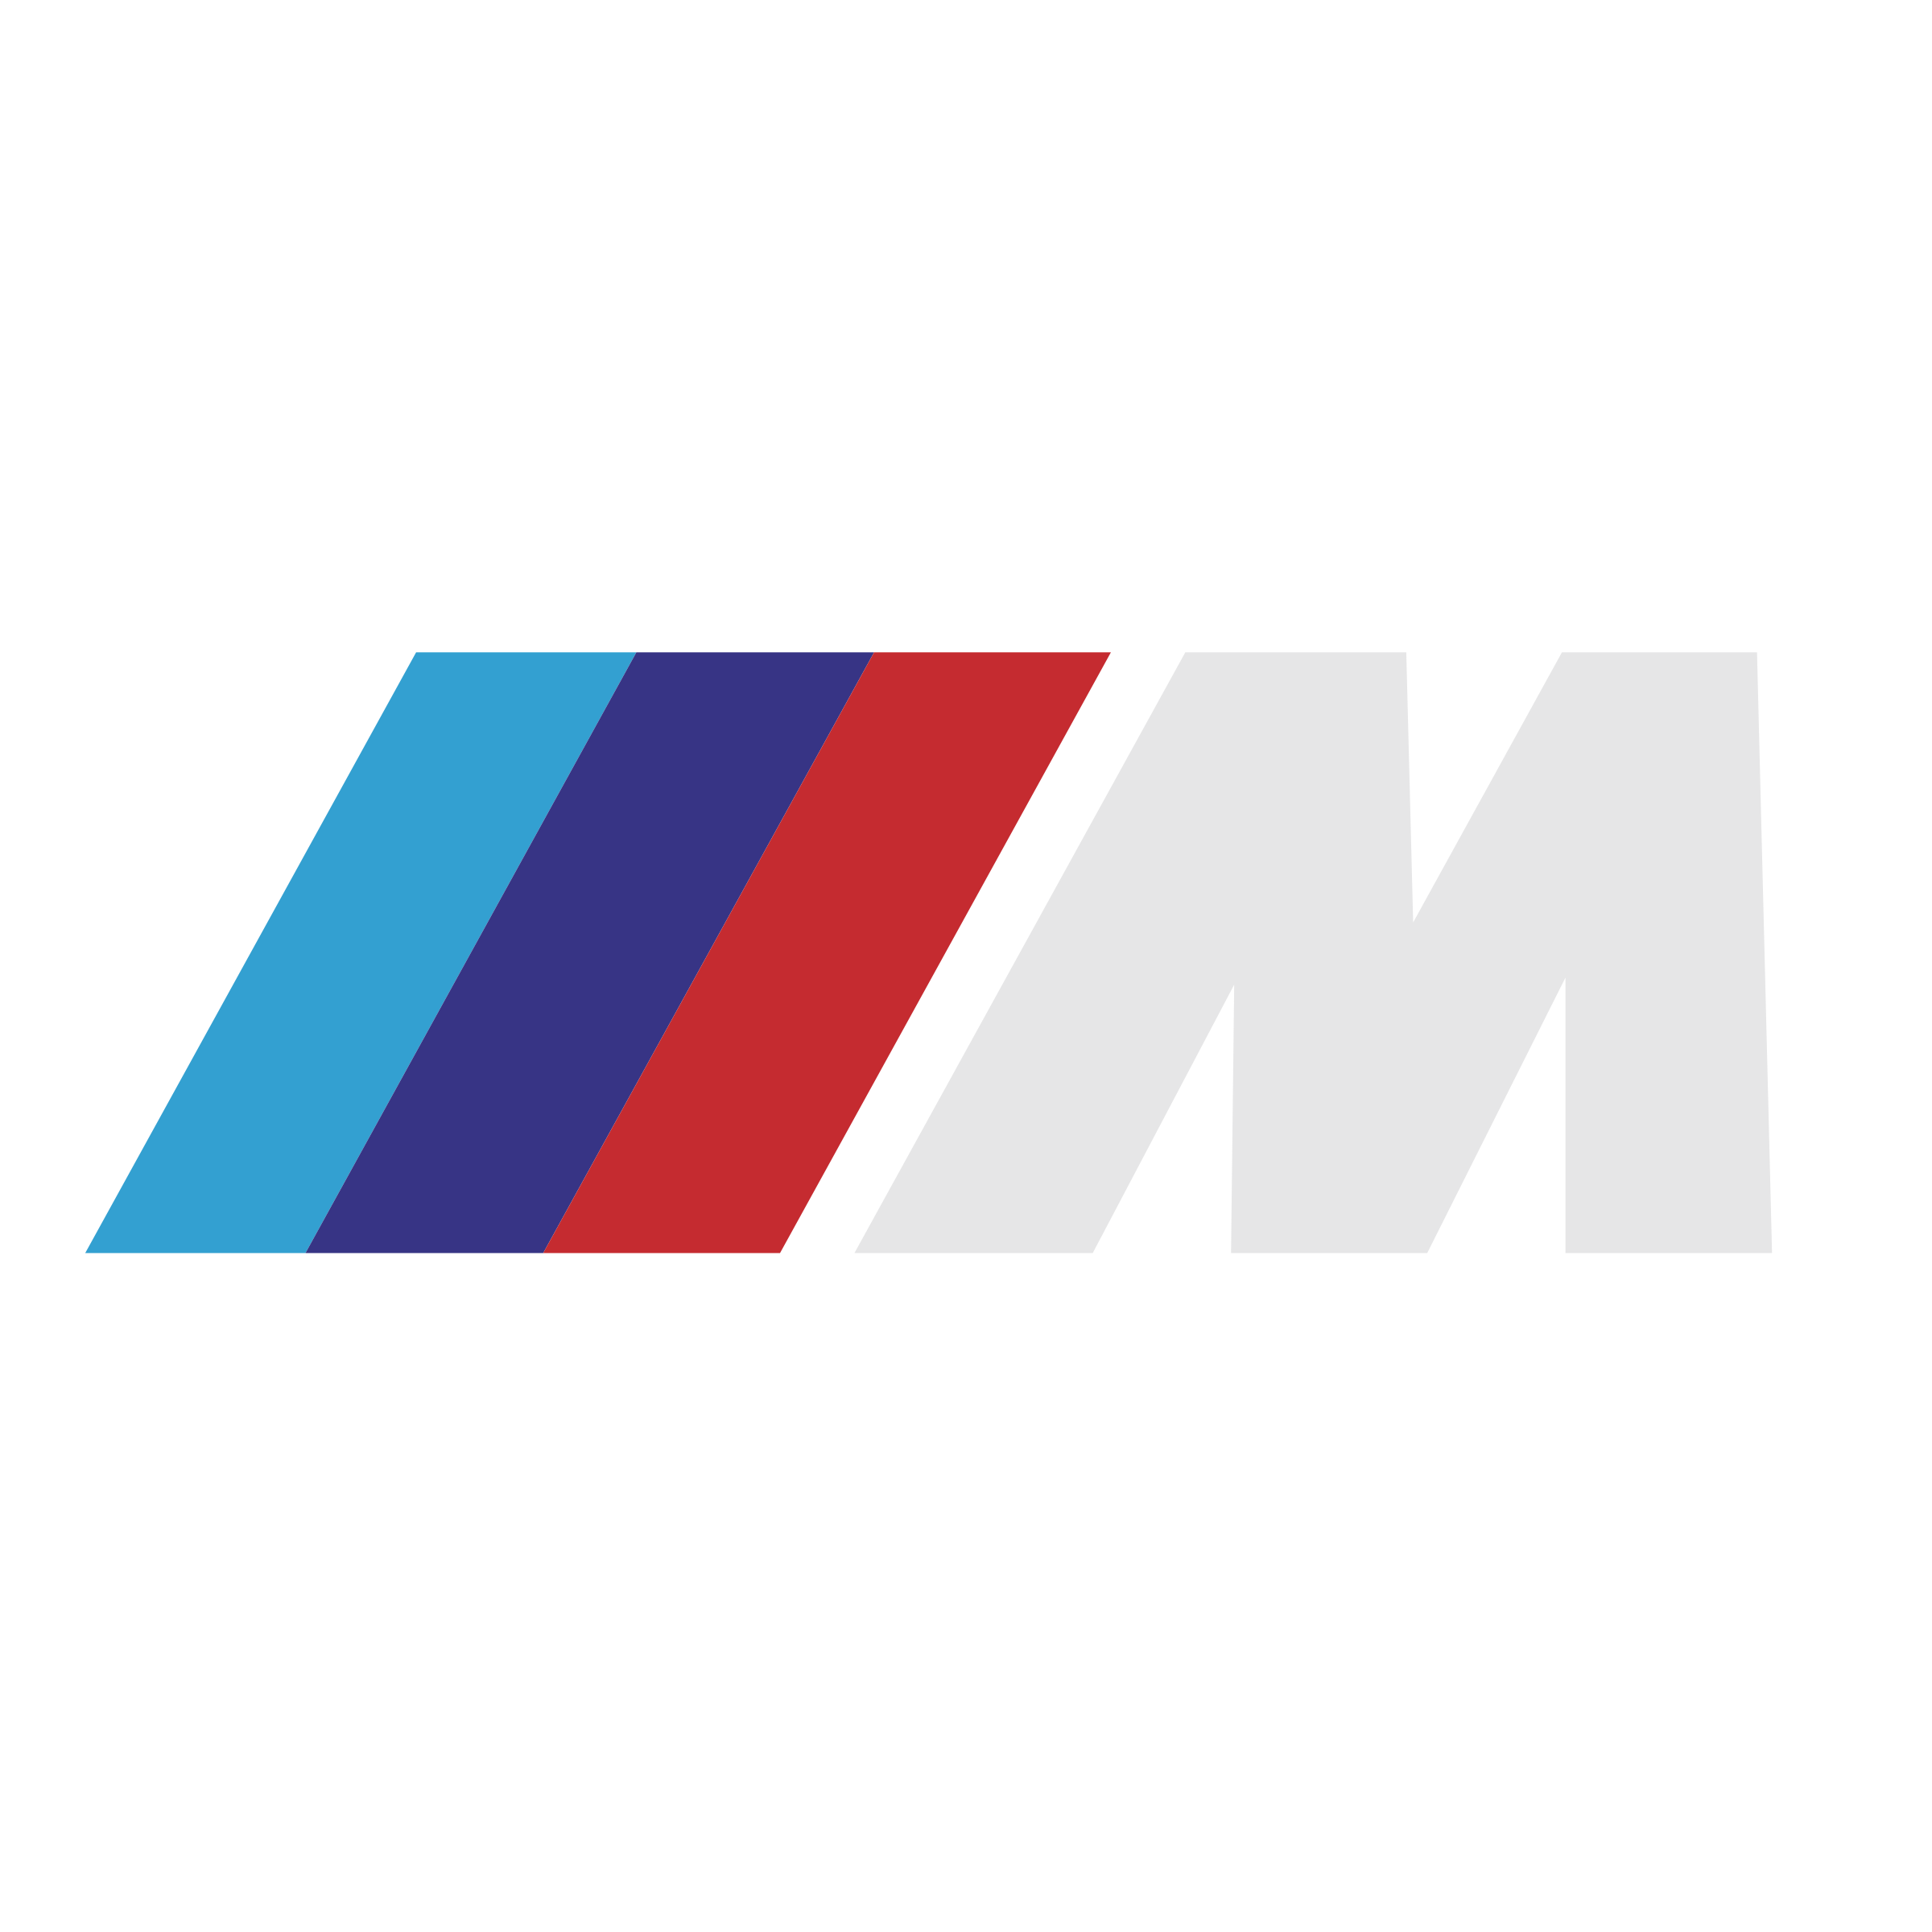 Bmw m png. Series logo transparent svg